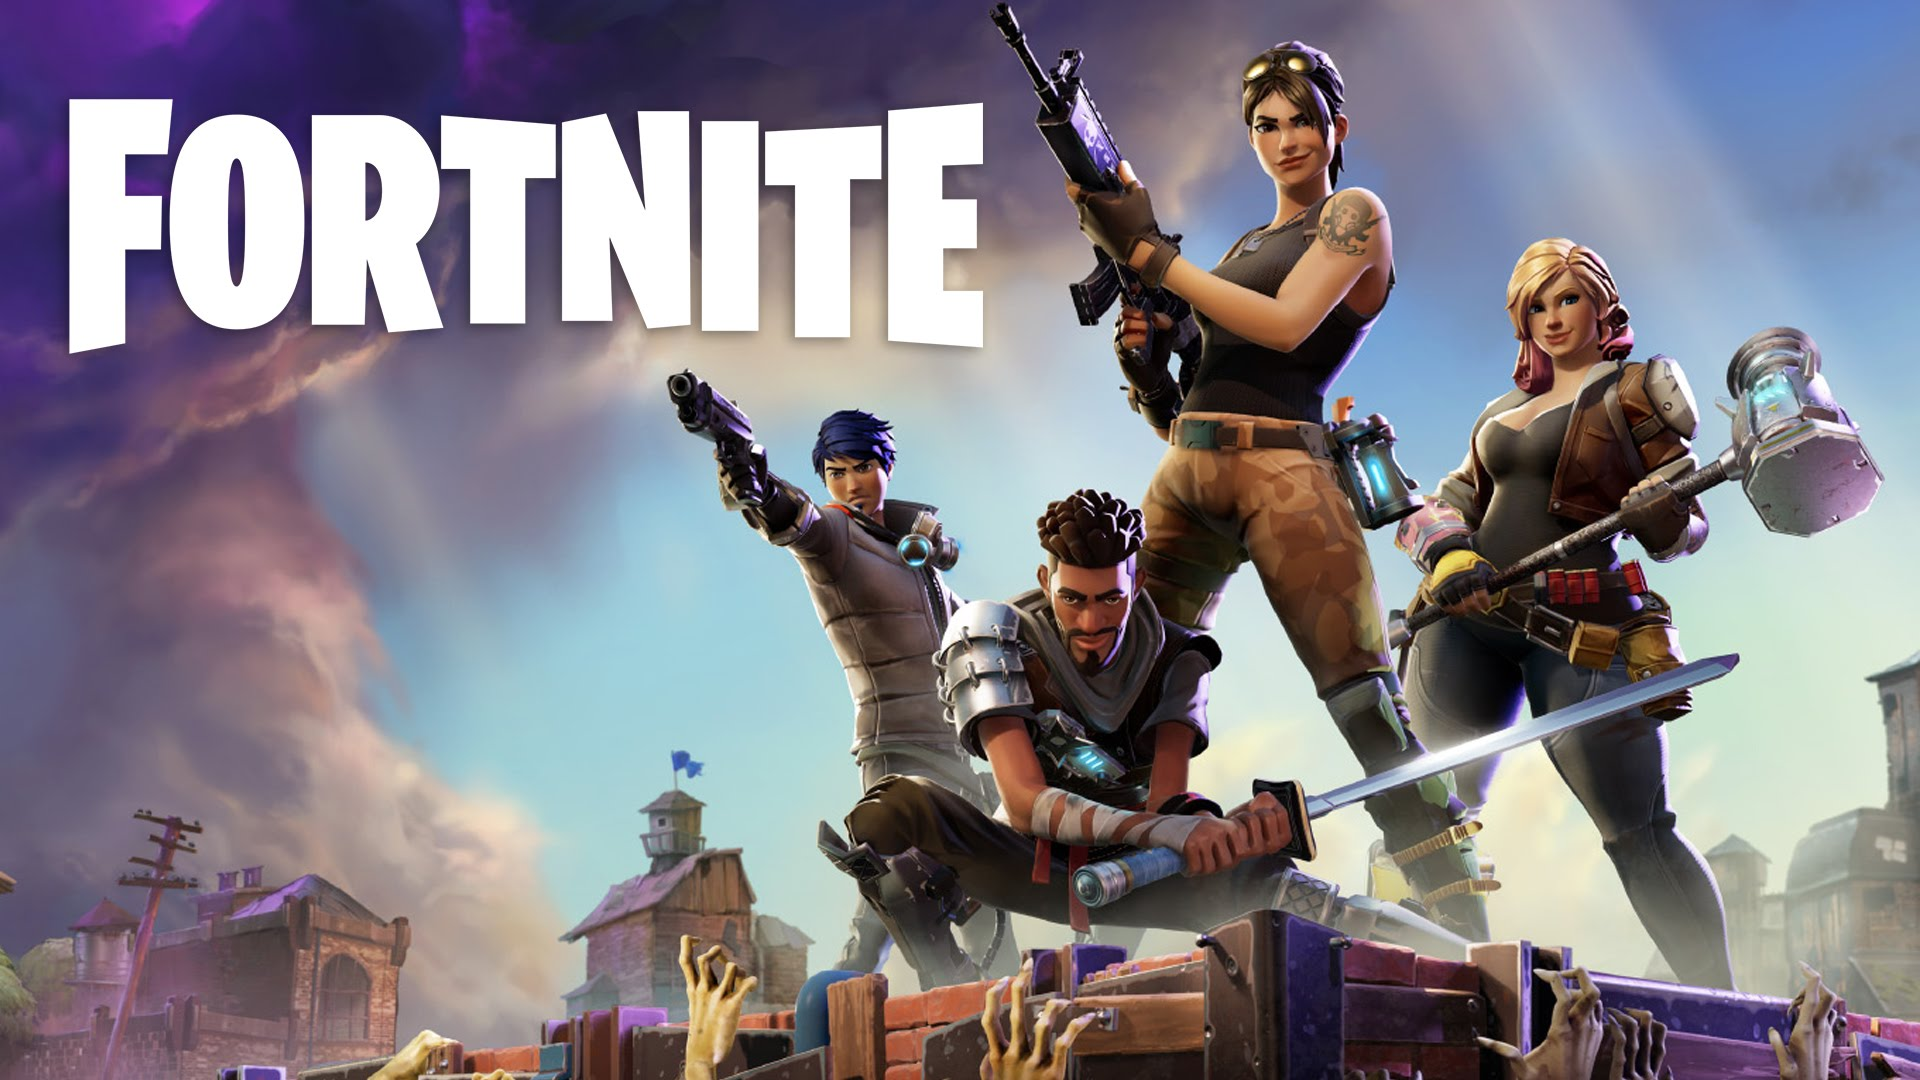 fornite Samsung Likely To Land Fortnite Exclusive